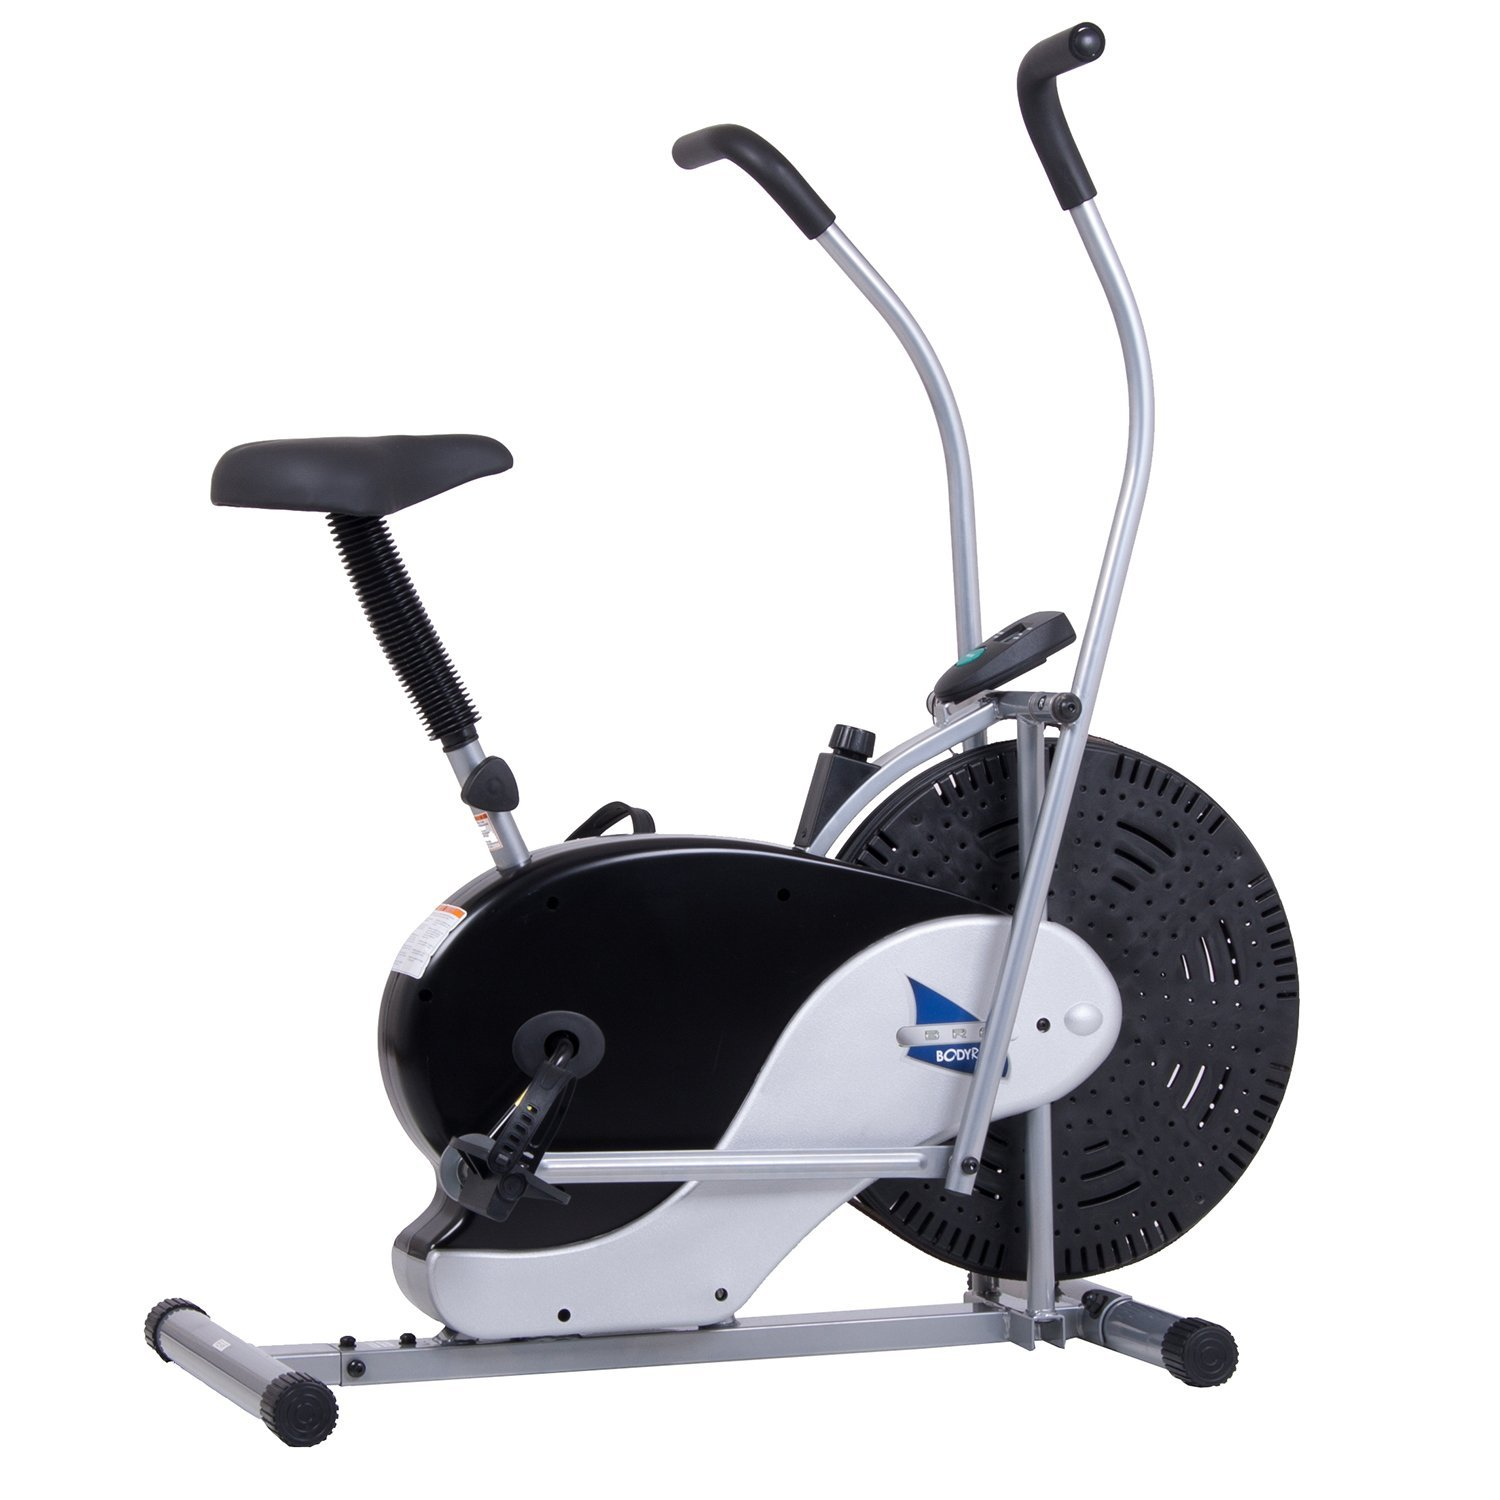 Body Rider Exercise Upright Fan Bike